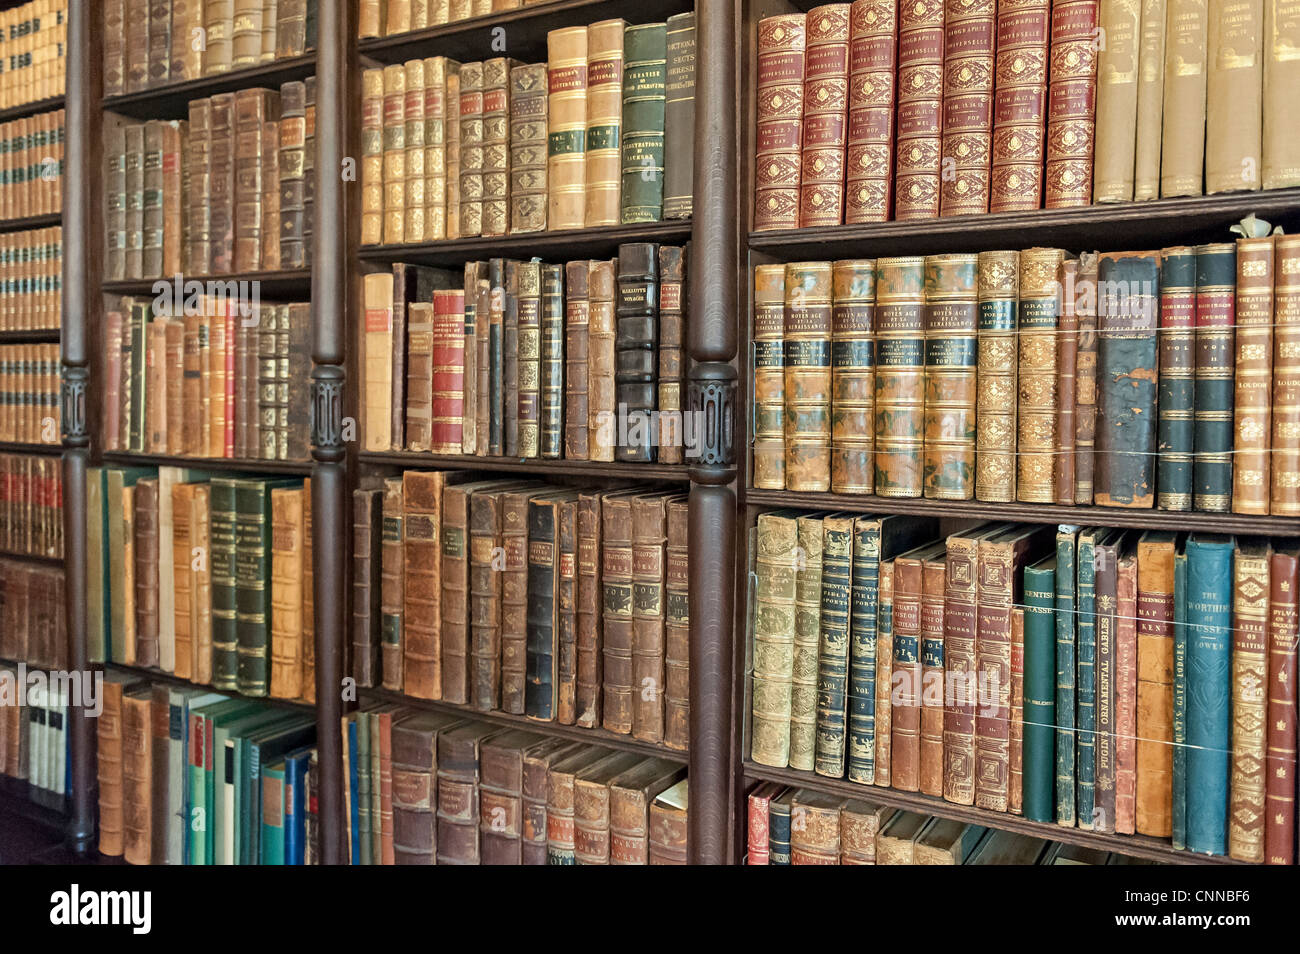 close up of a book case with old books - Stock Image